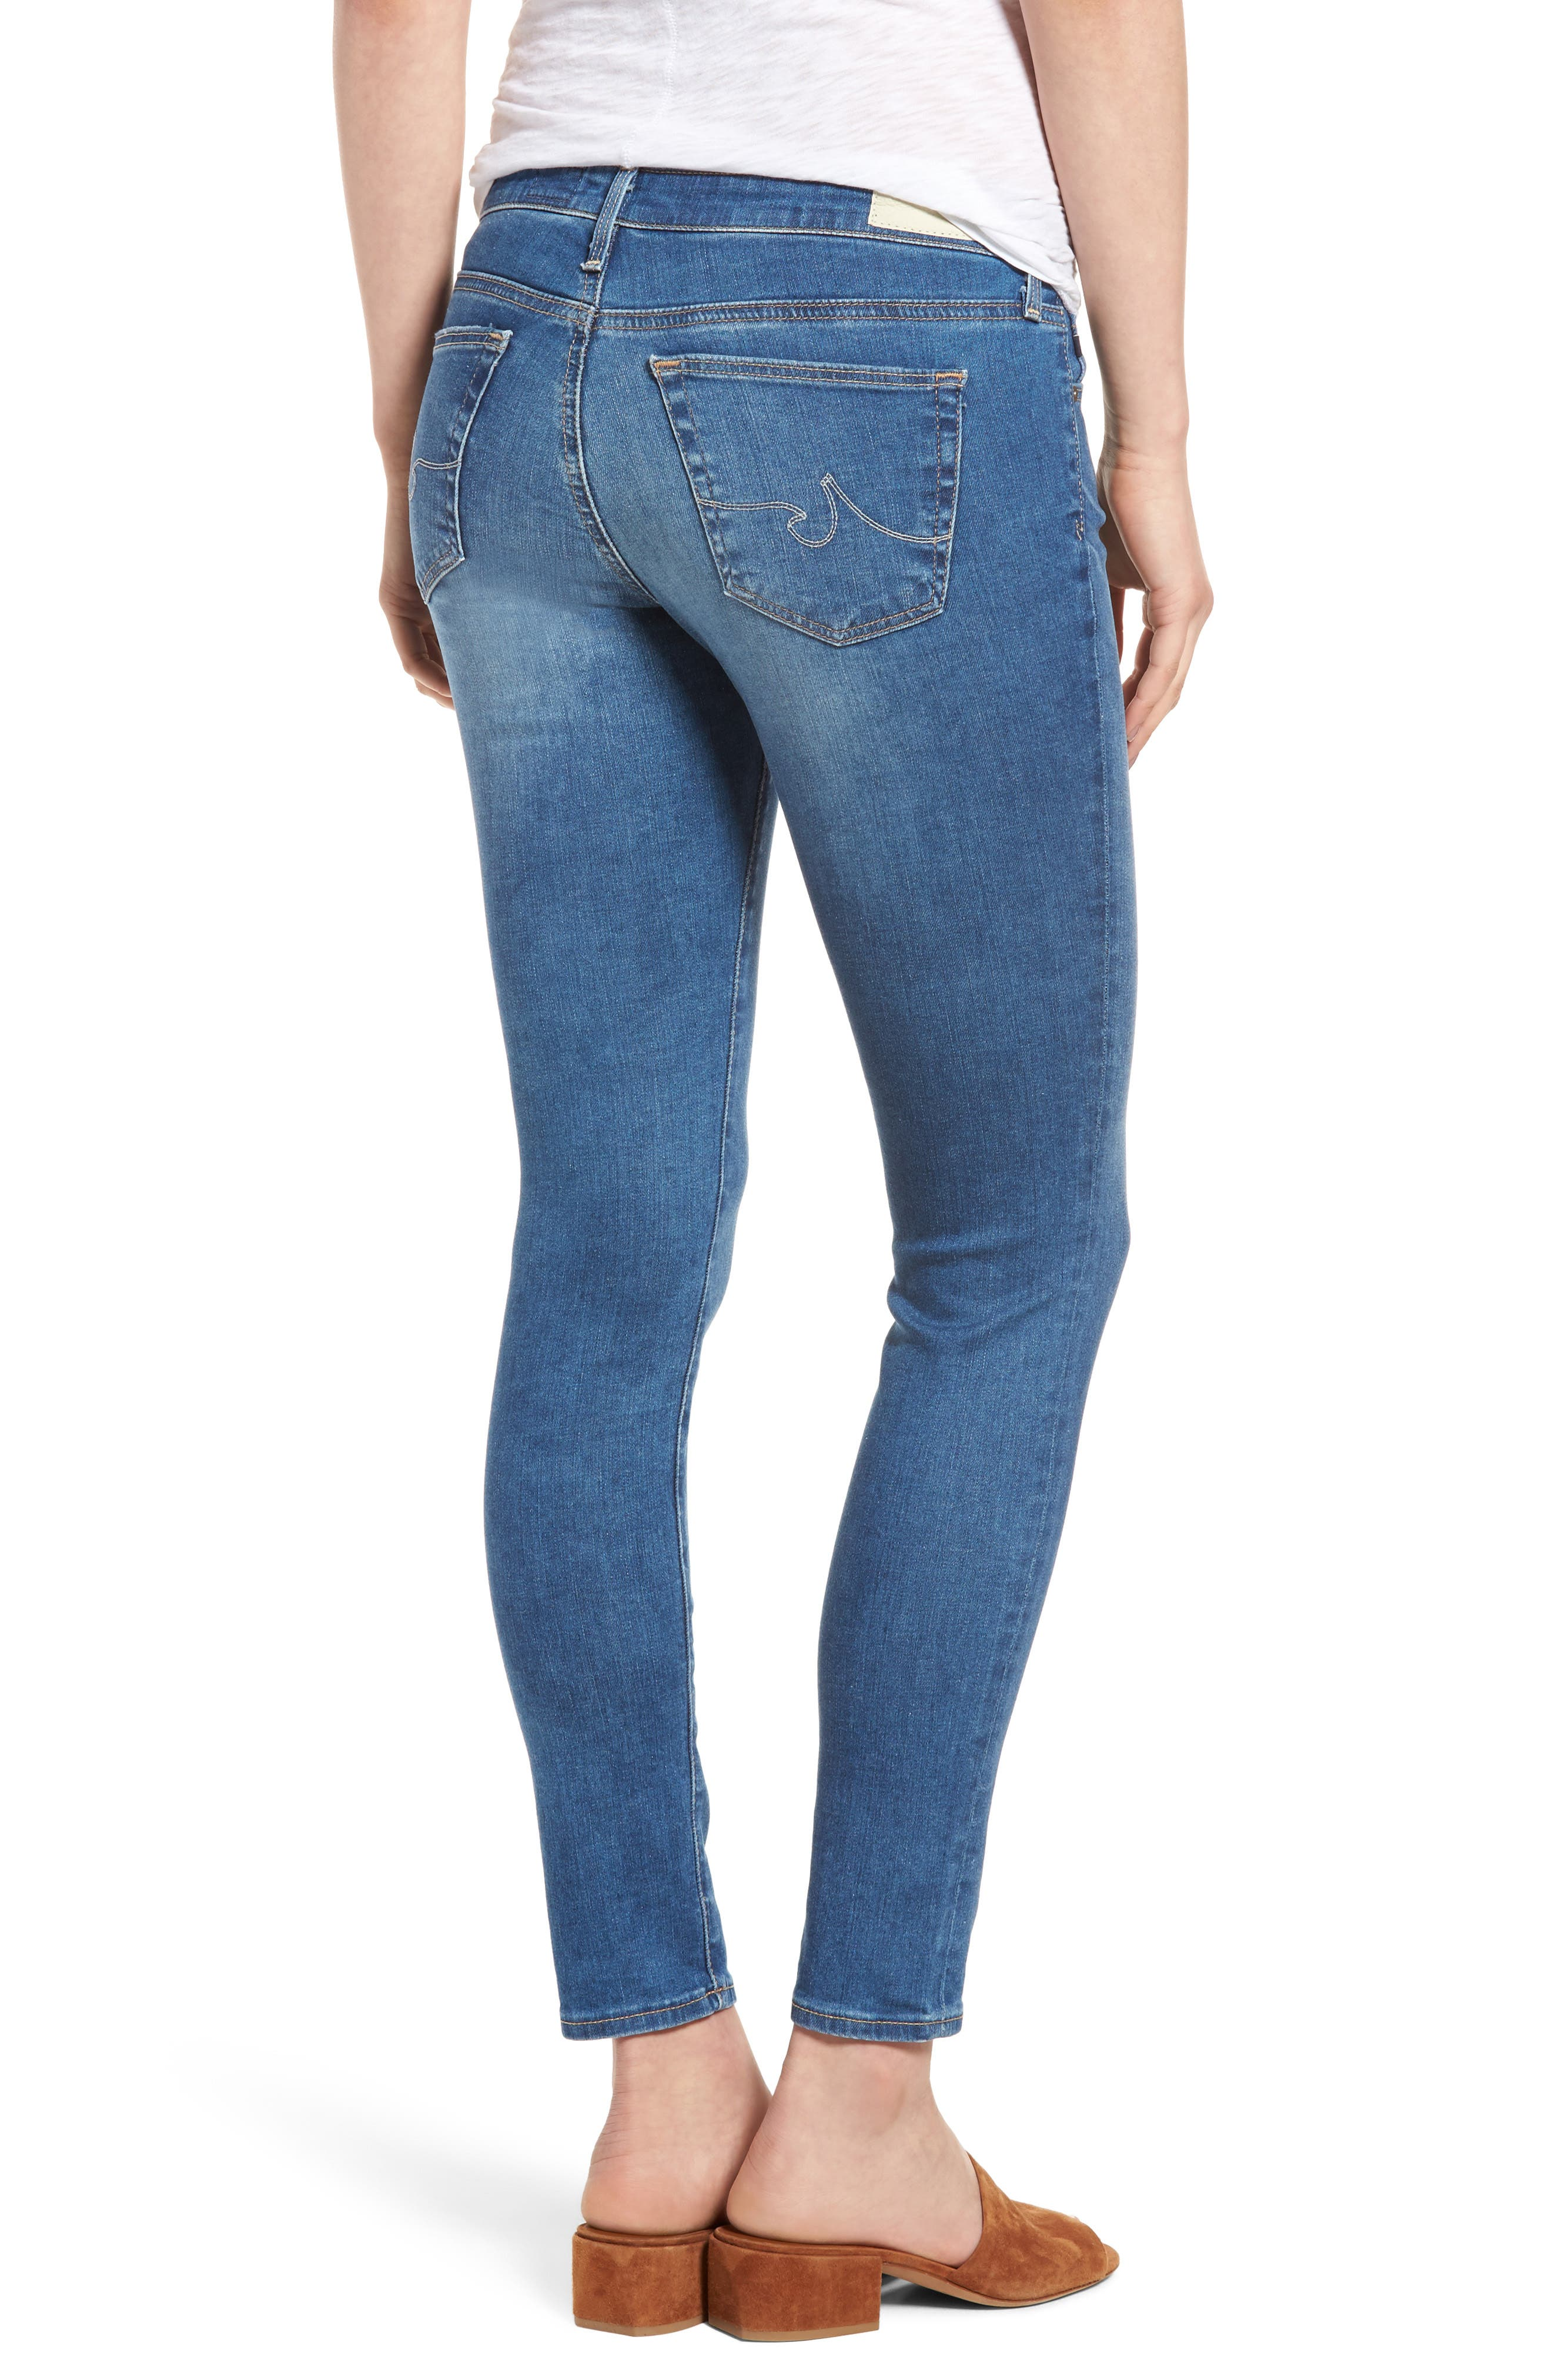 Alternate Image 2  - AG The Legging Ankle Jeans (Emanate)